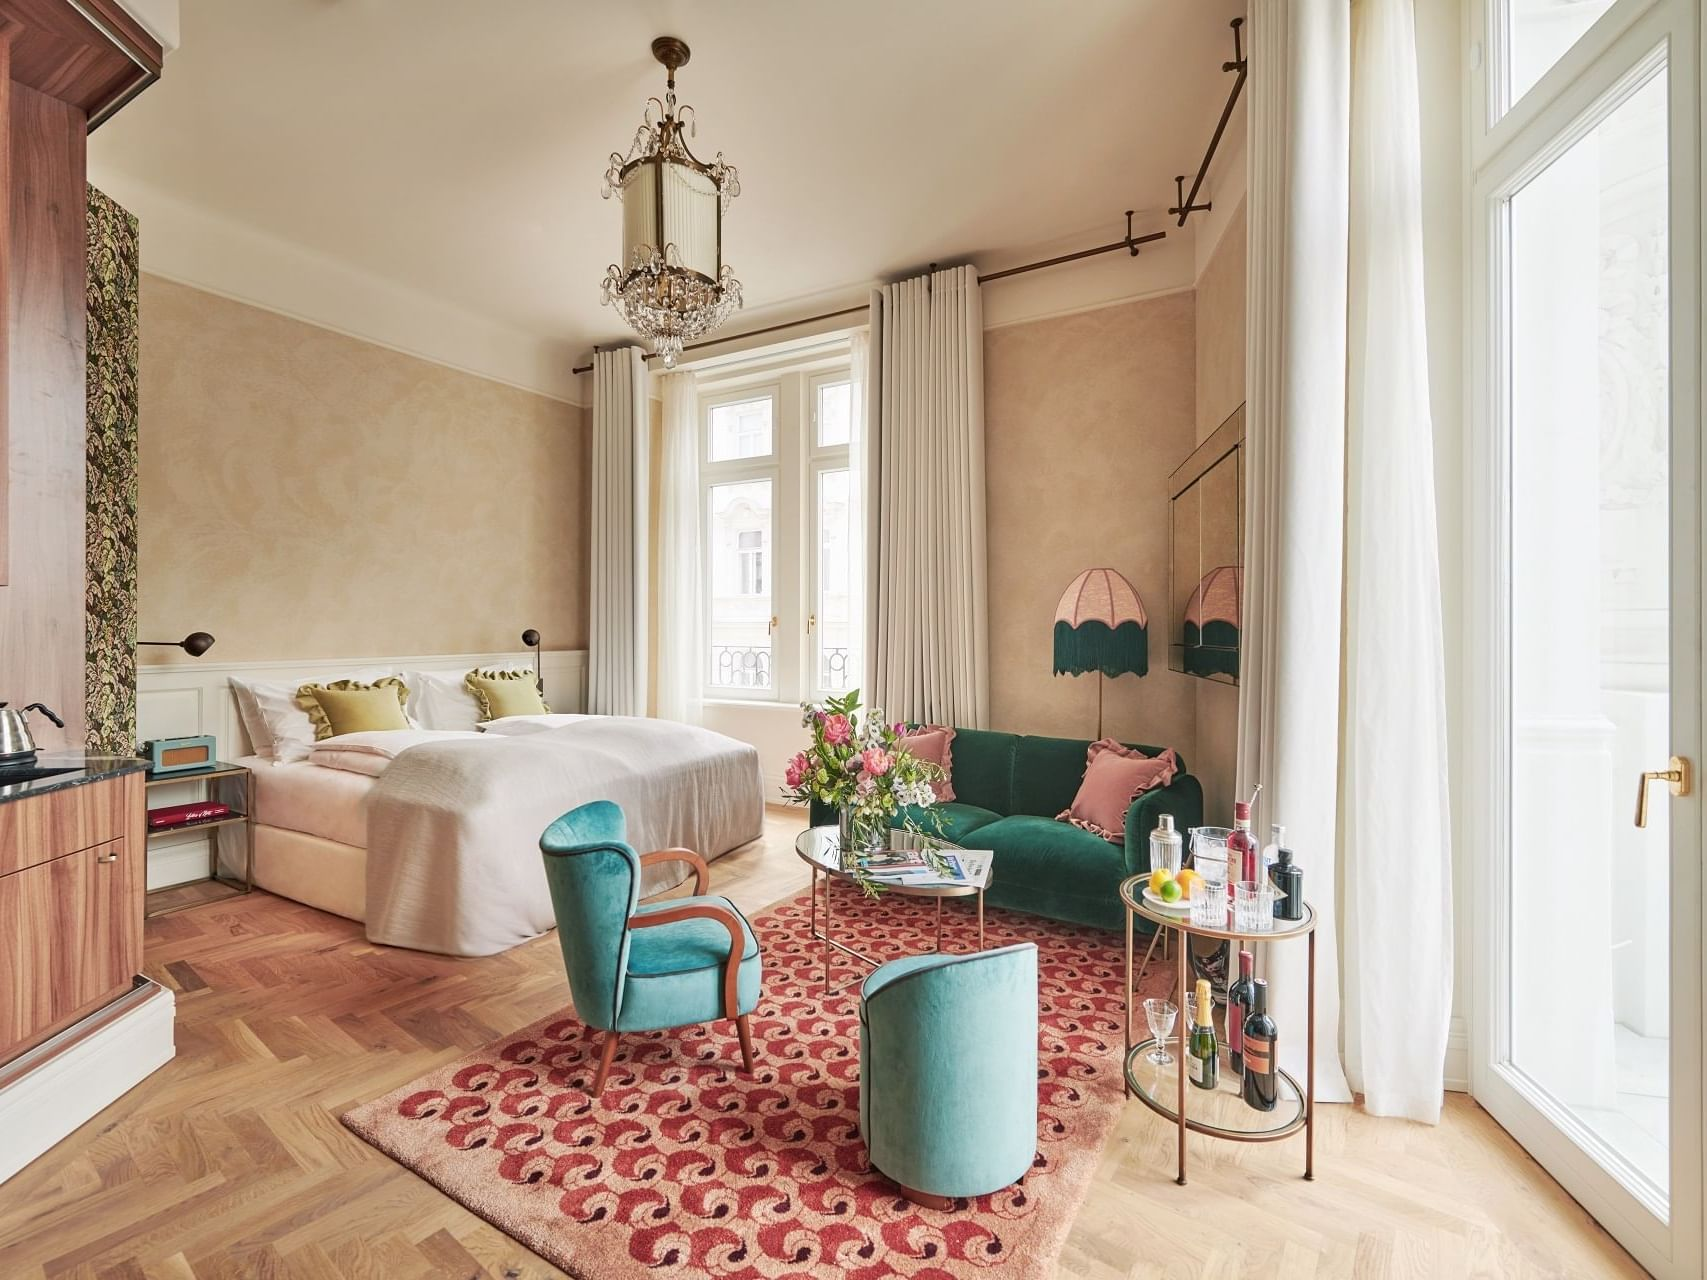 View of the Junior suite at Hotel Motto Vienna